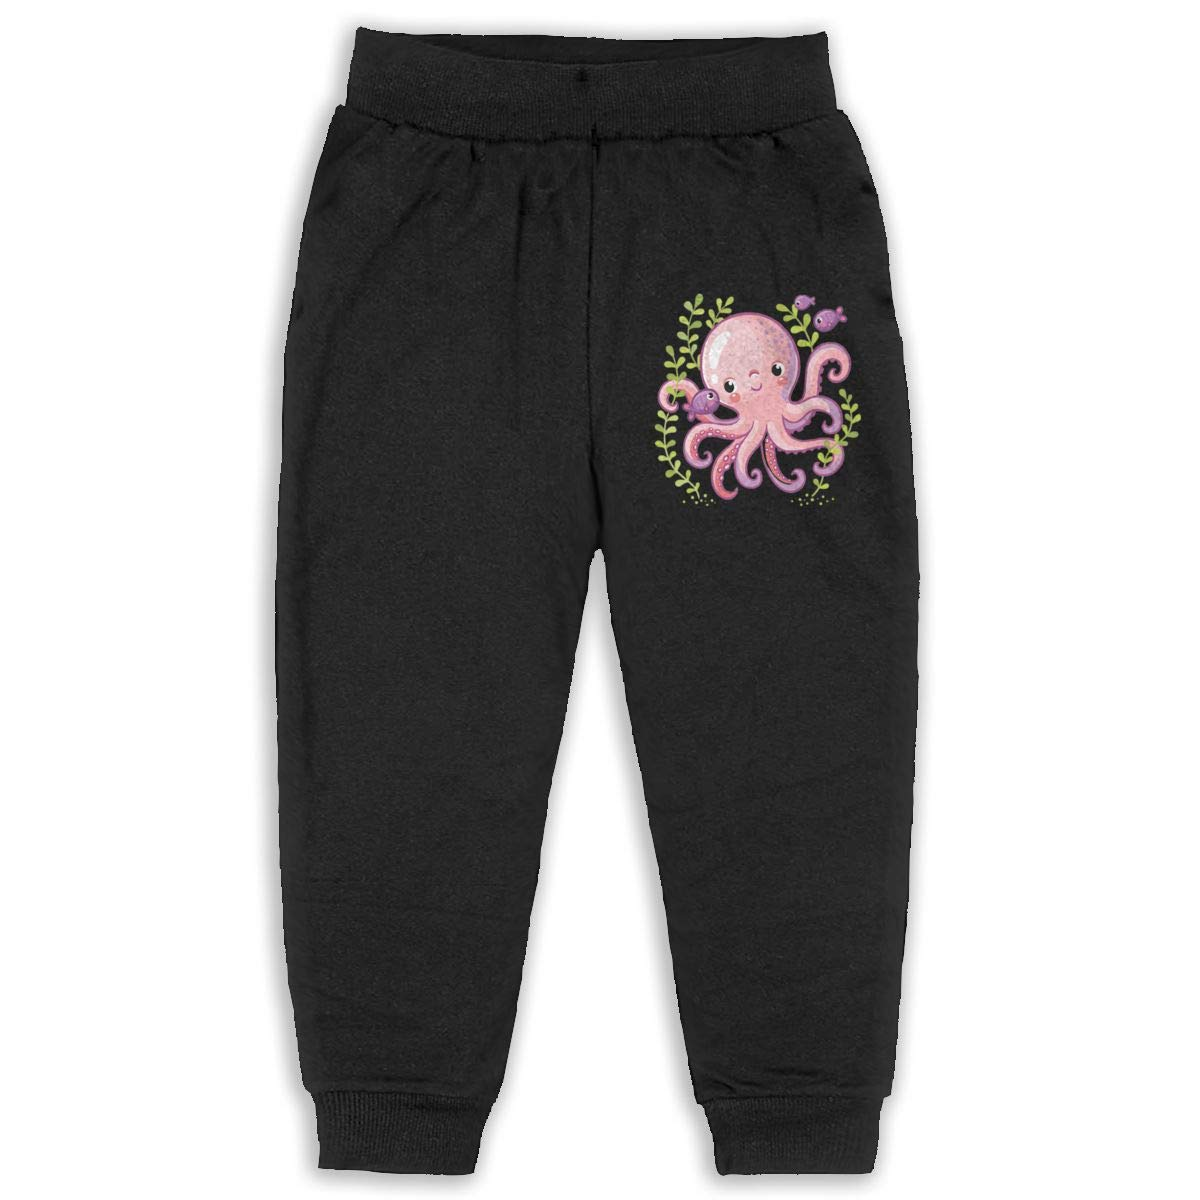 LFCLOSET Pink Cartoon Octopus Children Cartoon Cotton Sweatpants Sport Jogger Elastic Pants